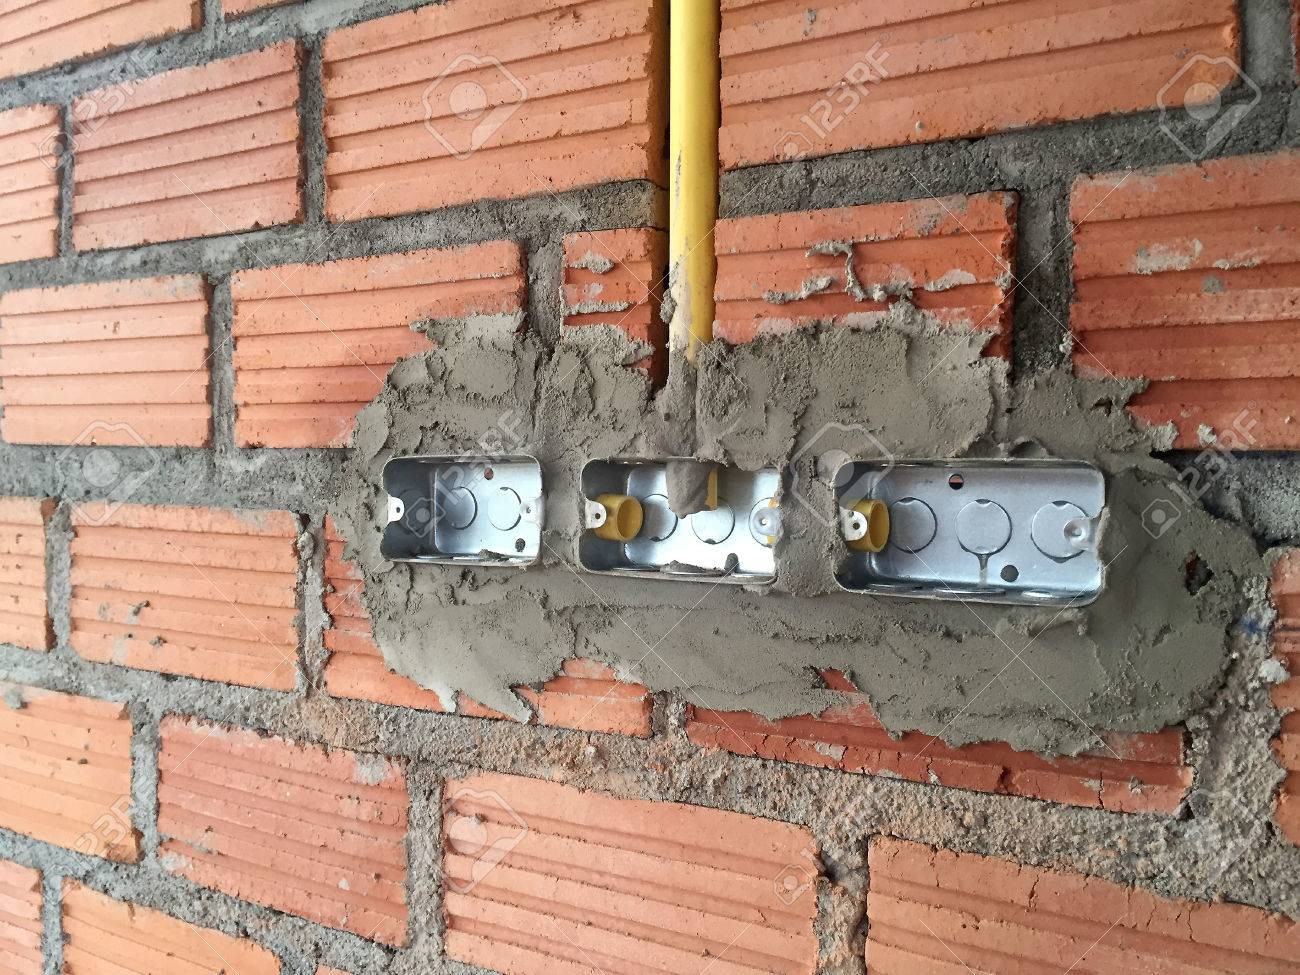 electric sockets installation in brick walls at house construction rh 123rf com House Electrical Wiring Basics Electrical Outlet Wiring Diagram